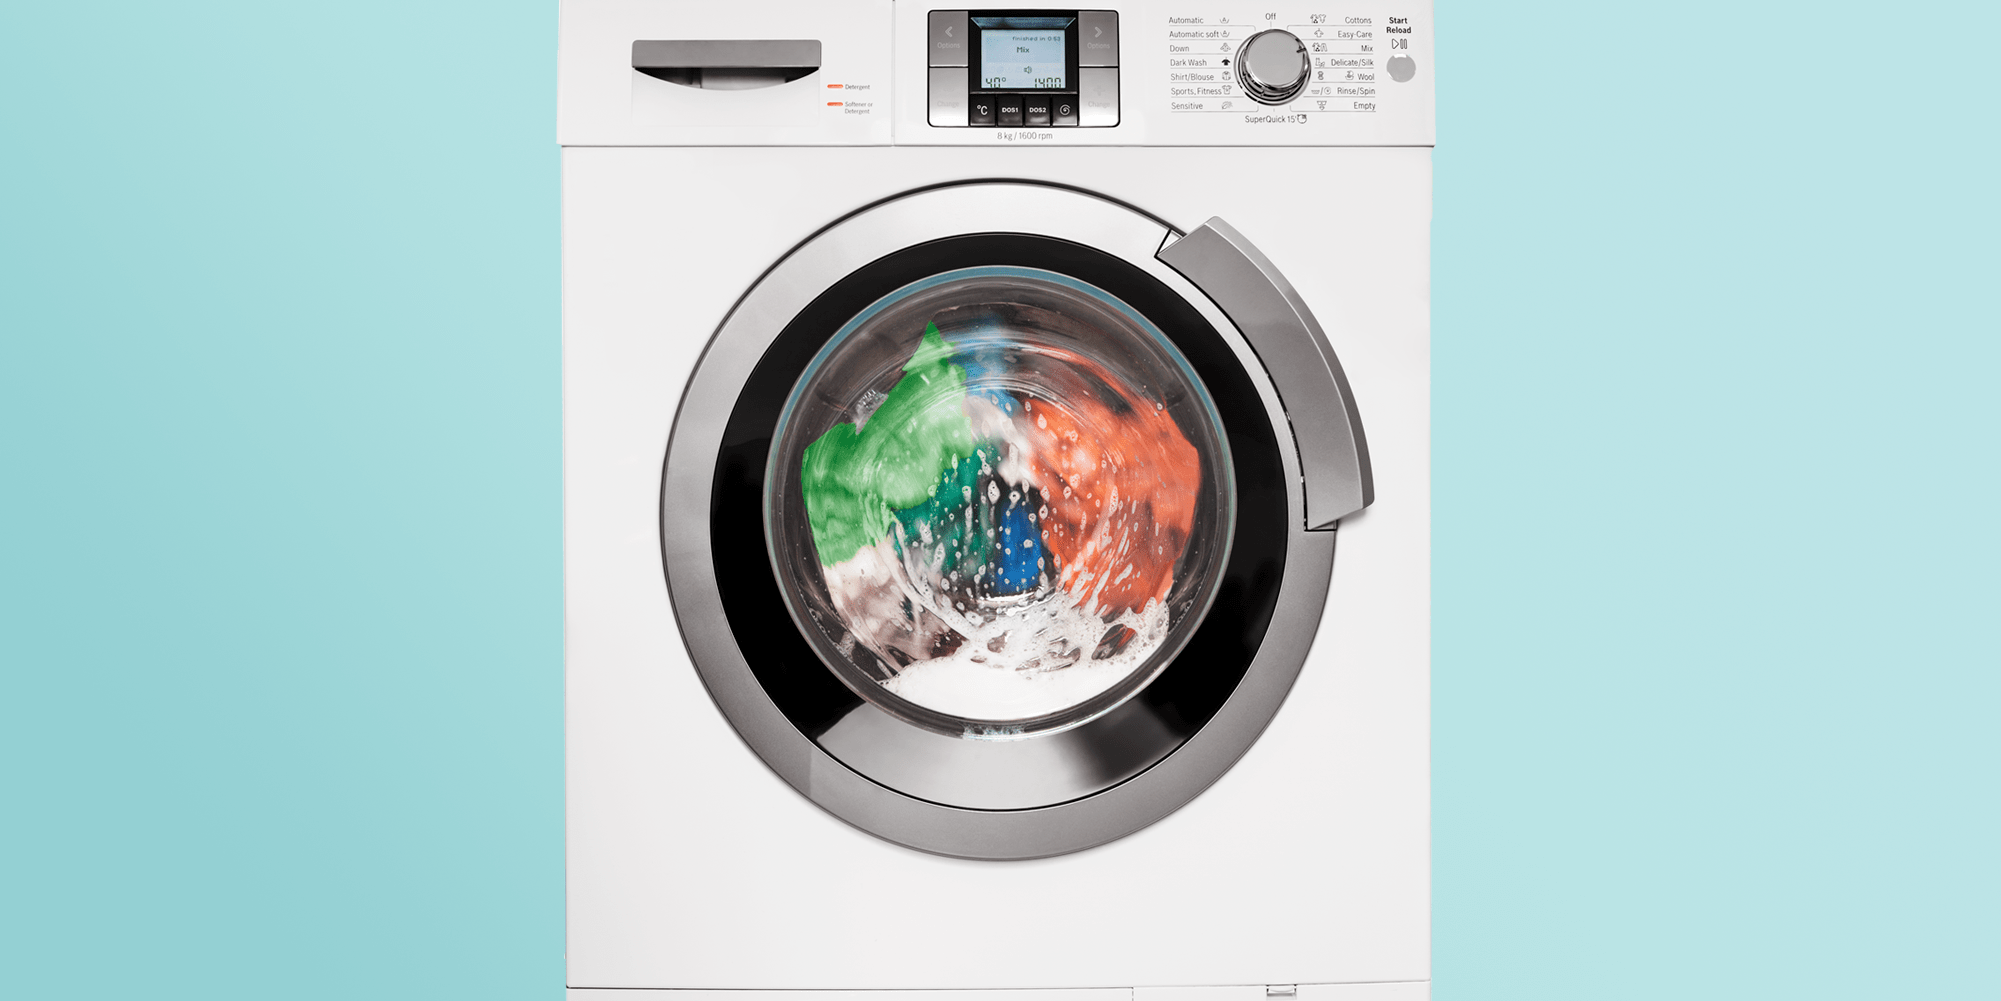 Sears Washer And Dryer Canada 8 Best Washing Machines To Buy In 2019 Top Washing Machine Reviews